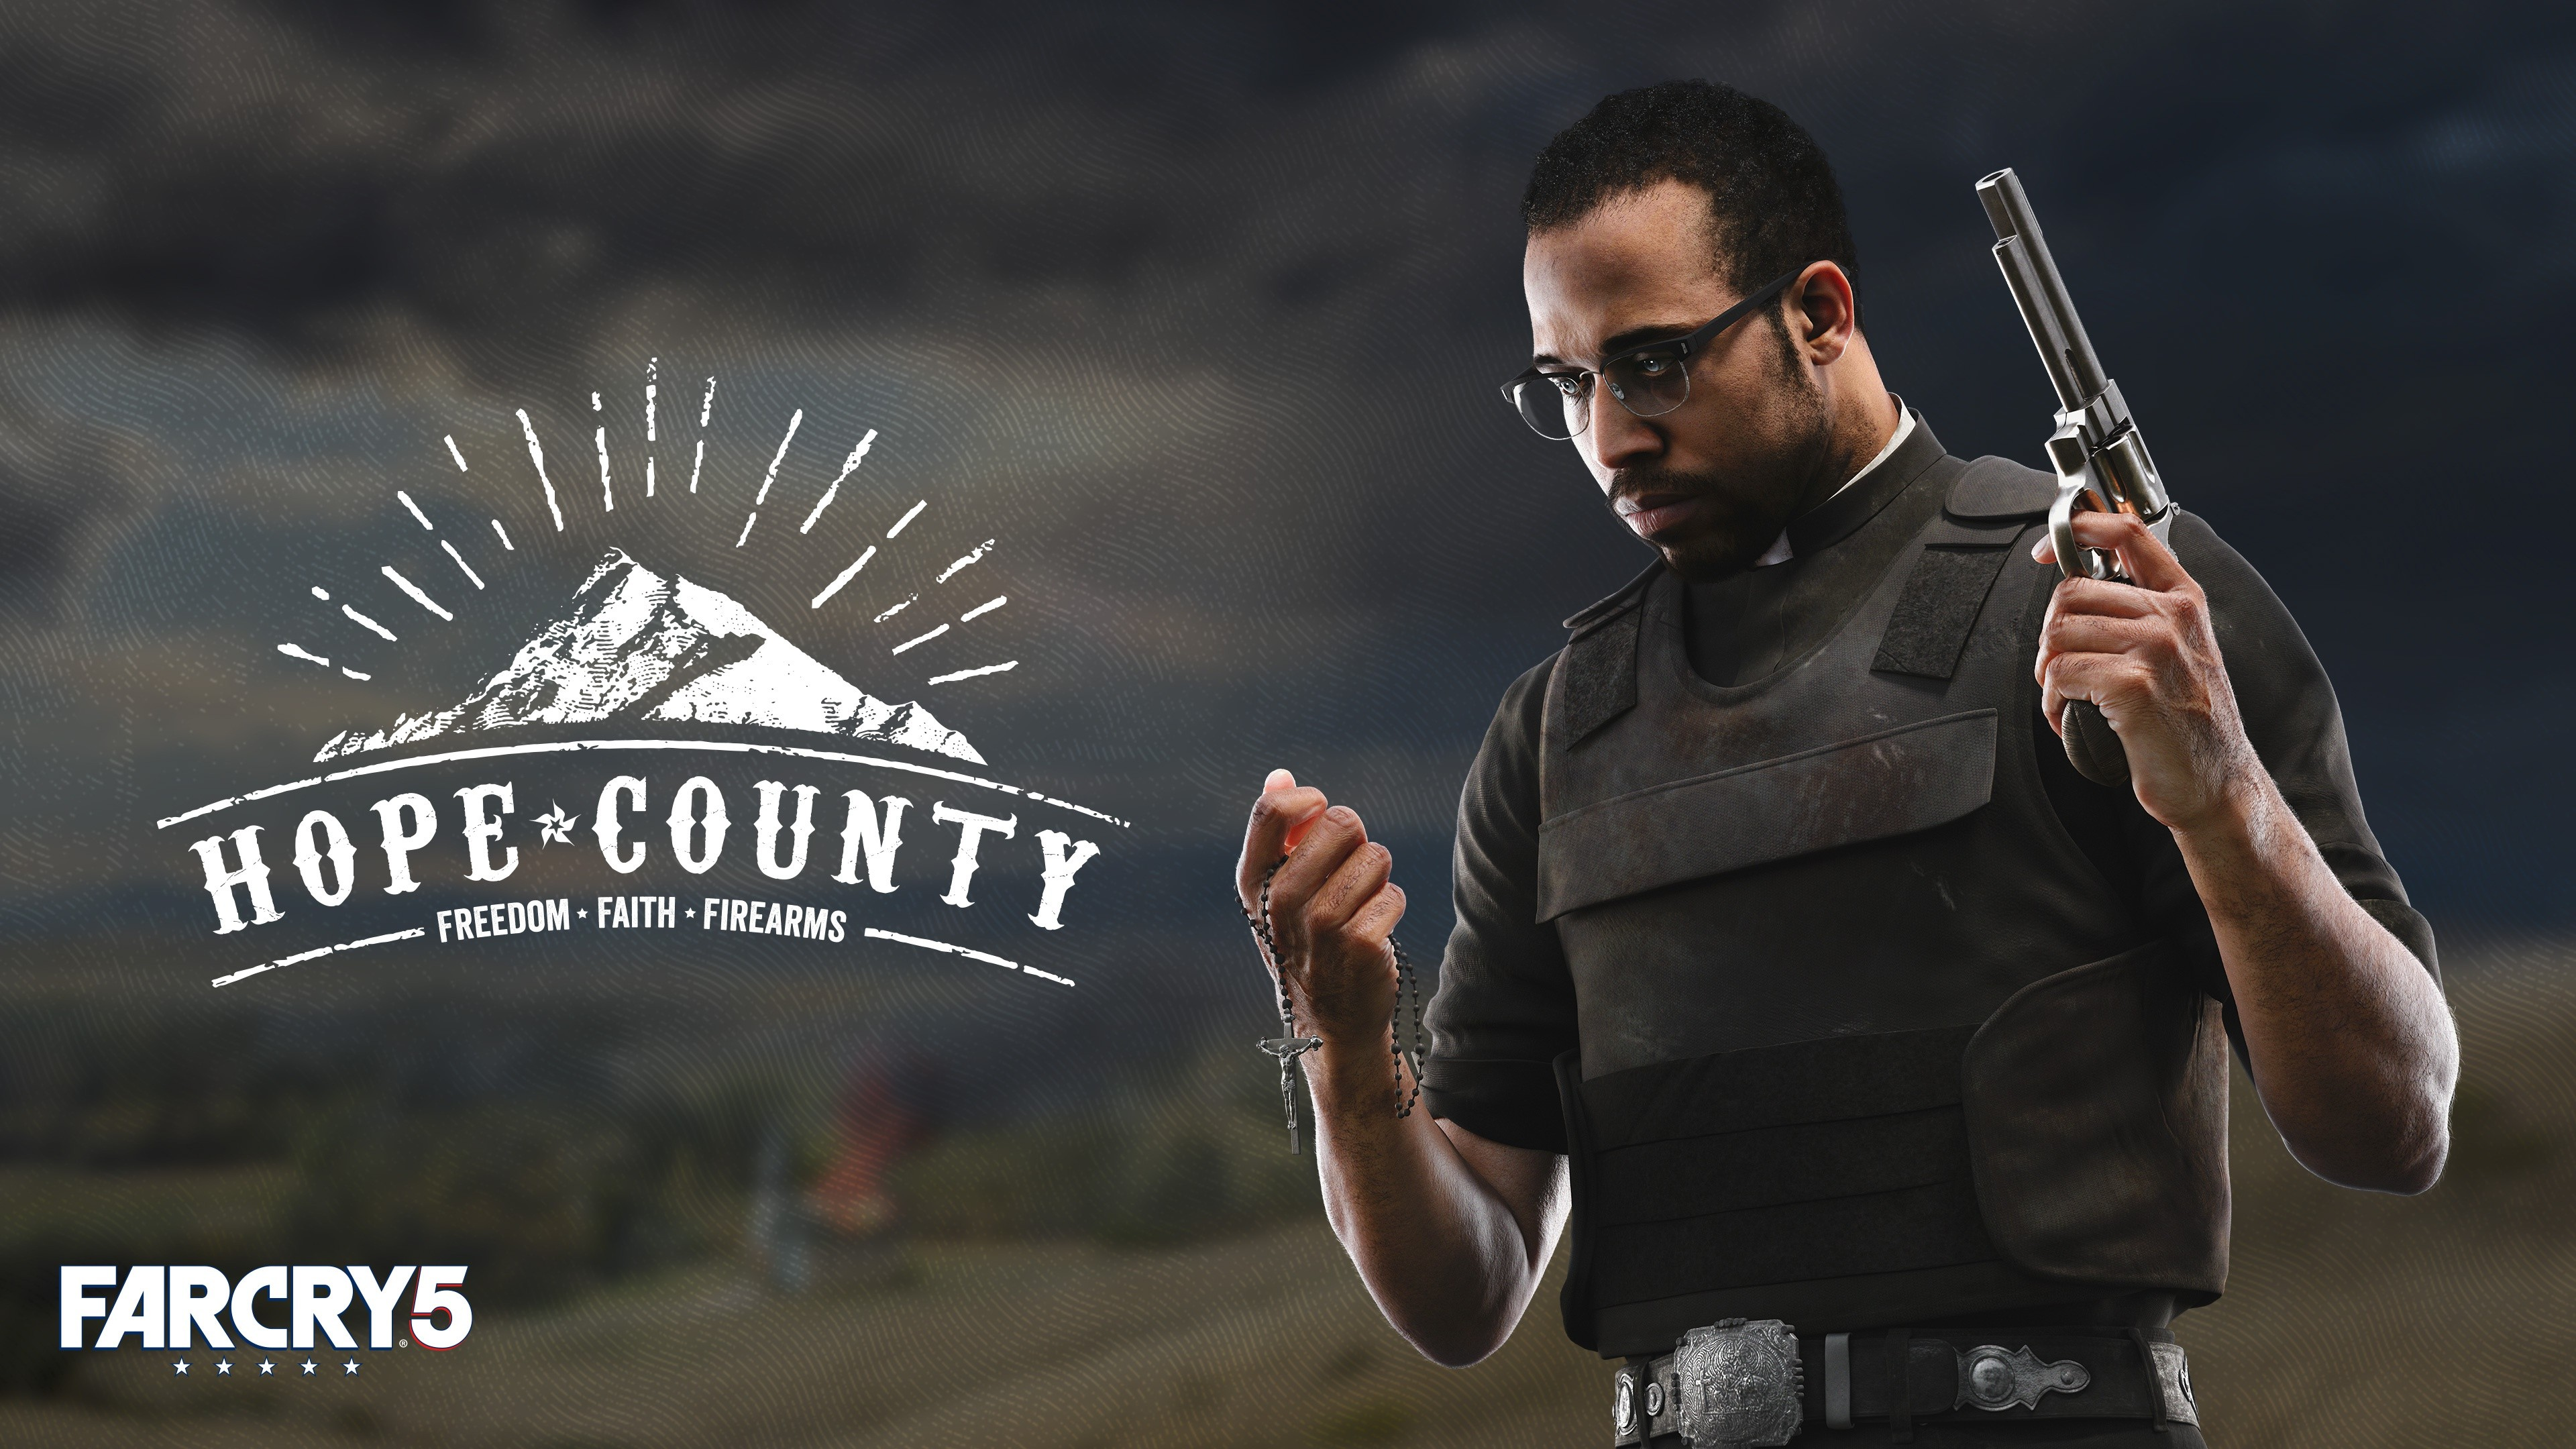 Fall Background Wallpaper Hd Wallpaper Far Cry 5 Hope County Poster Think Divine 4k